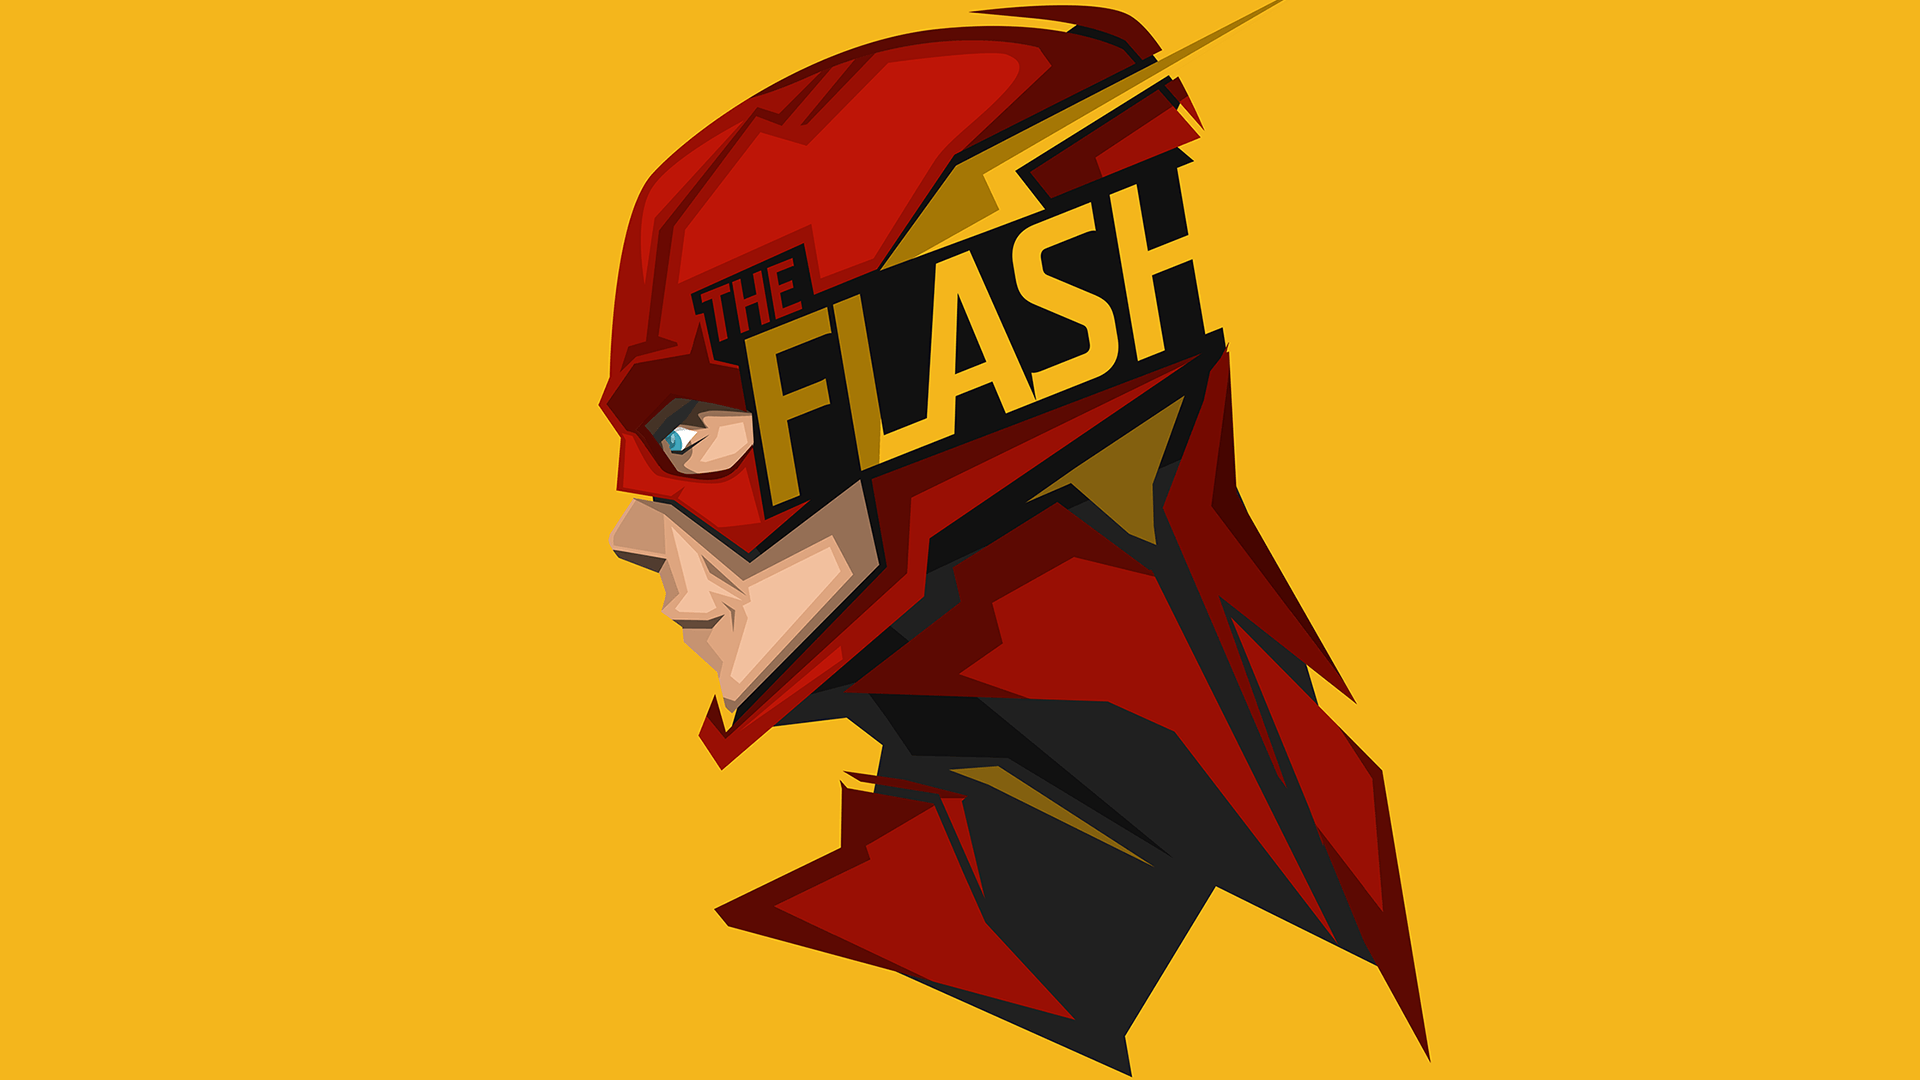 188 Flash HD Wallpapers